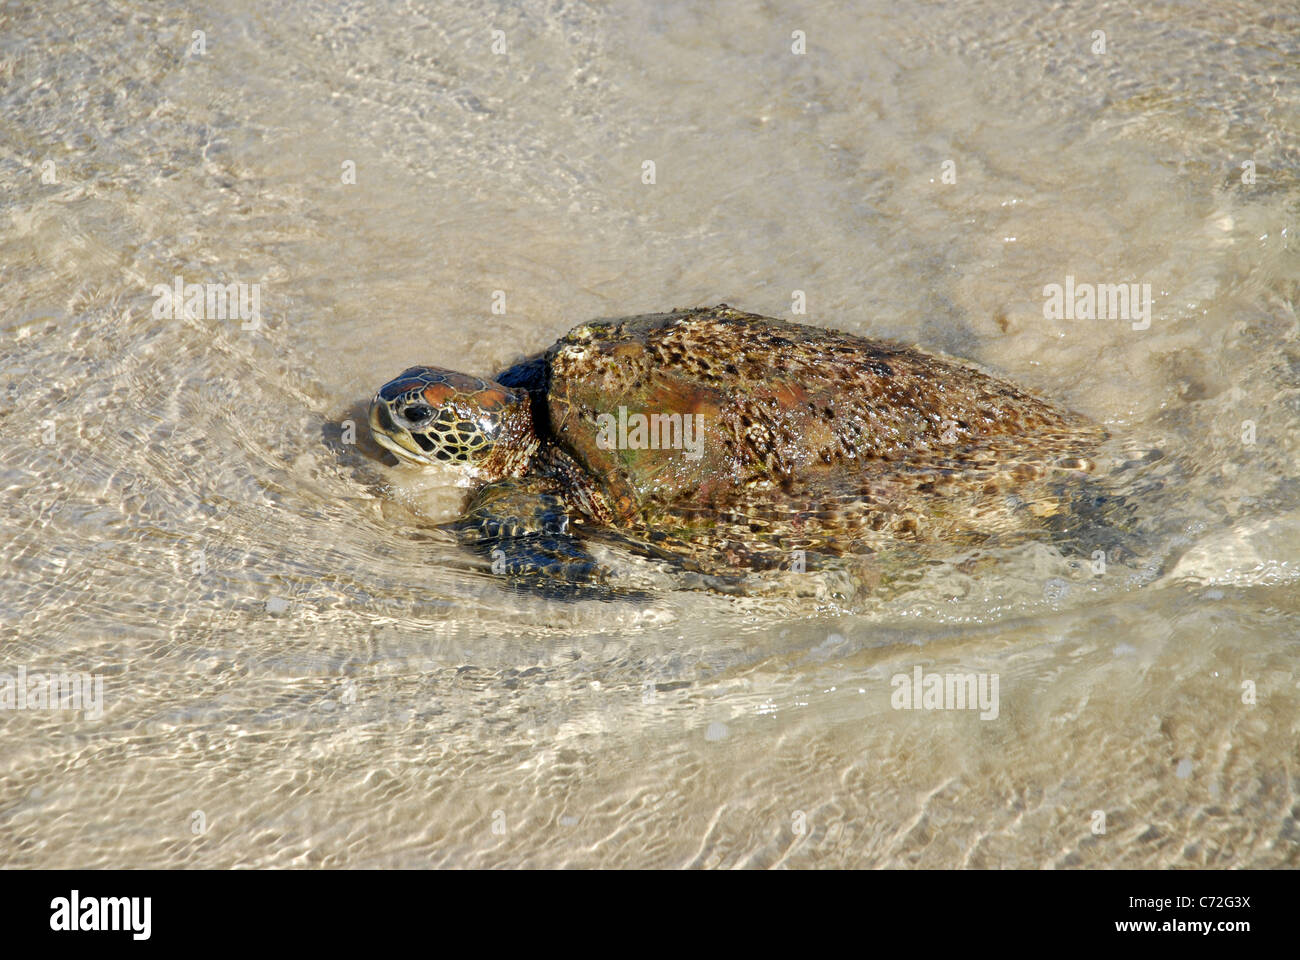 malnourished Green Sea Turtle (Chelonia Mydas), washed up on Florence Bay beach, Magnetic Island, Queensland, Australia - Stock Image